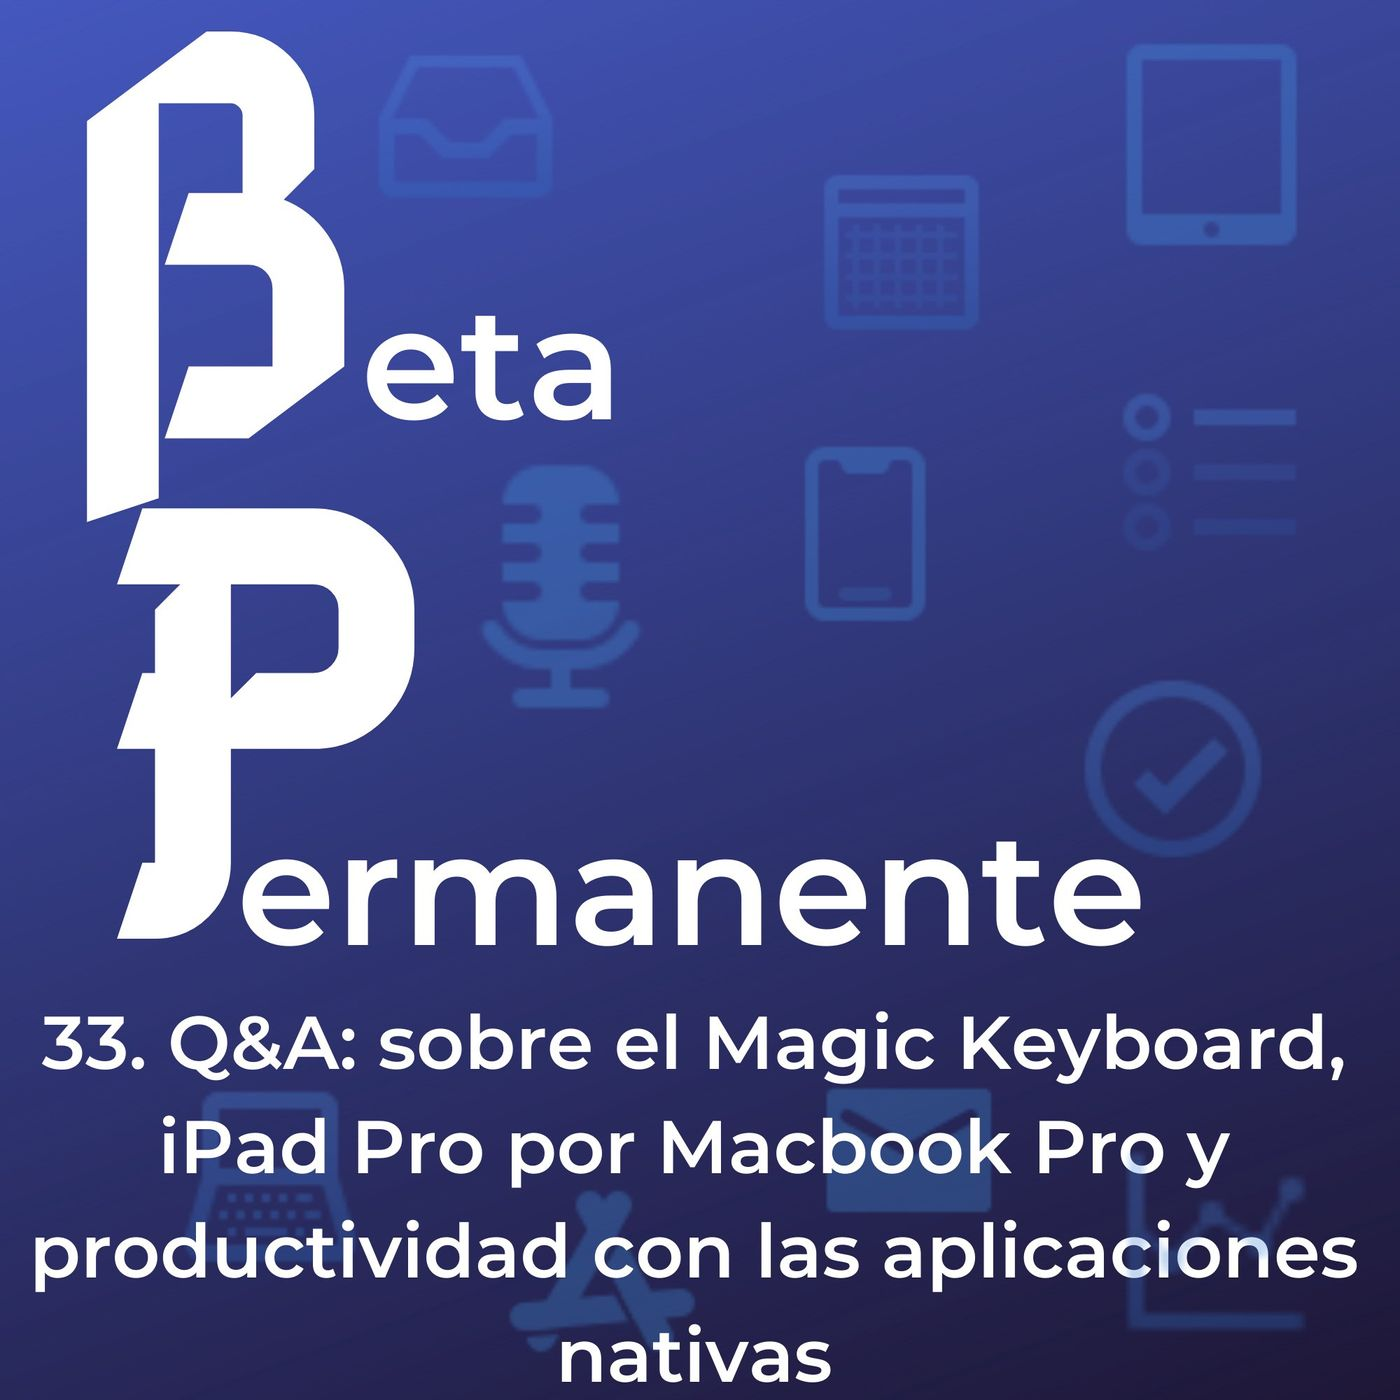 BP33 - Q&A- sobre el Magic Keyboard, iPad Pro por Macbook Pro y productividad con las aplicaciones nativas